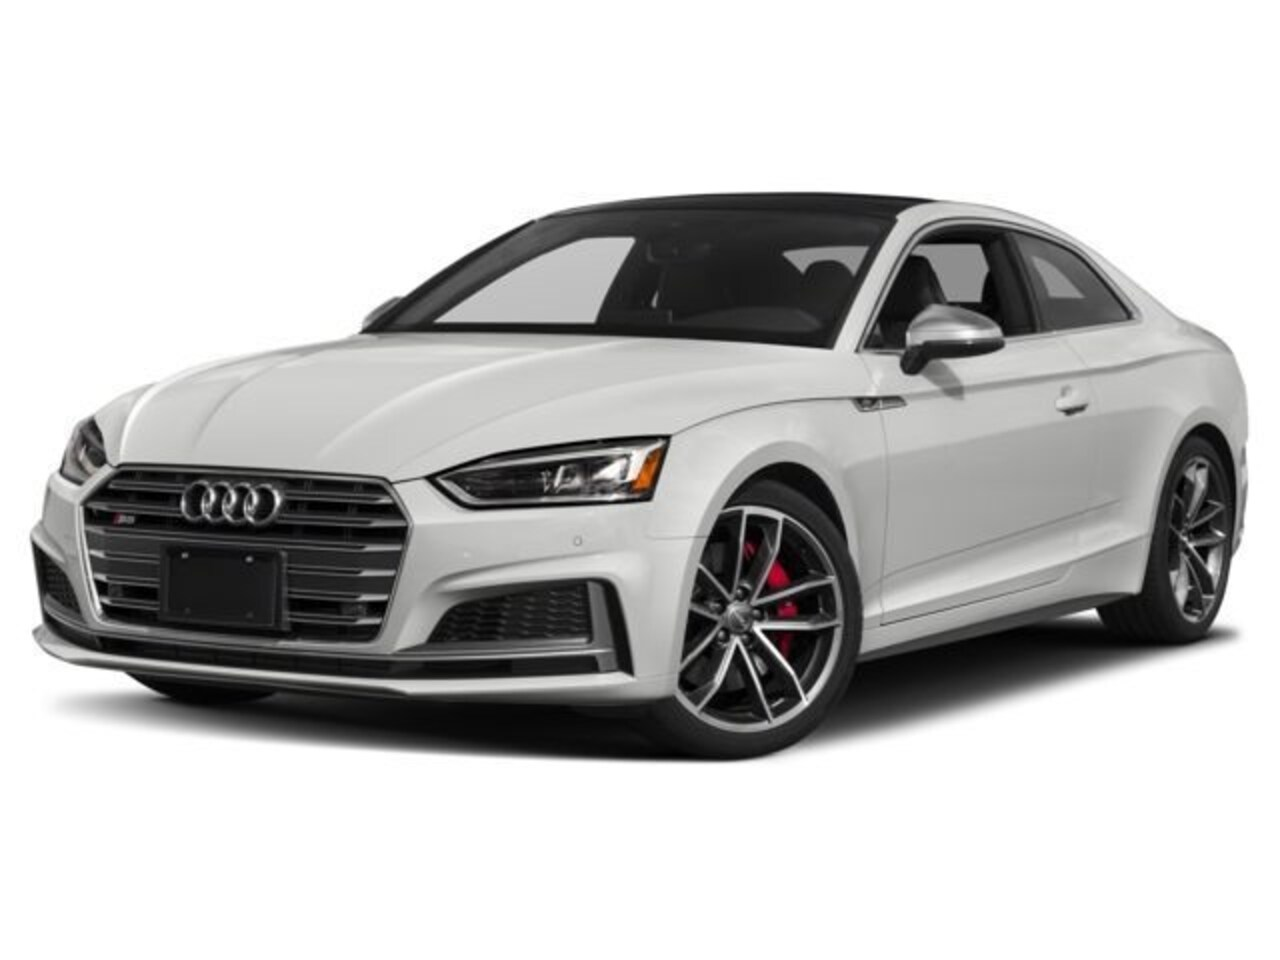 2018 Audi S5 3.0T Technik Quattro 8sp Tiptronic Cpe Coupe